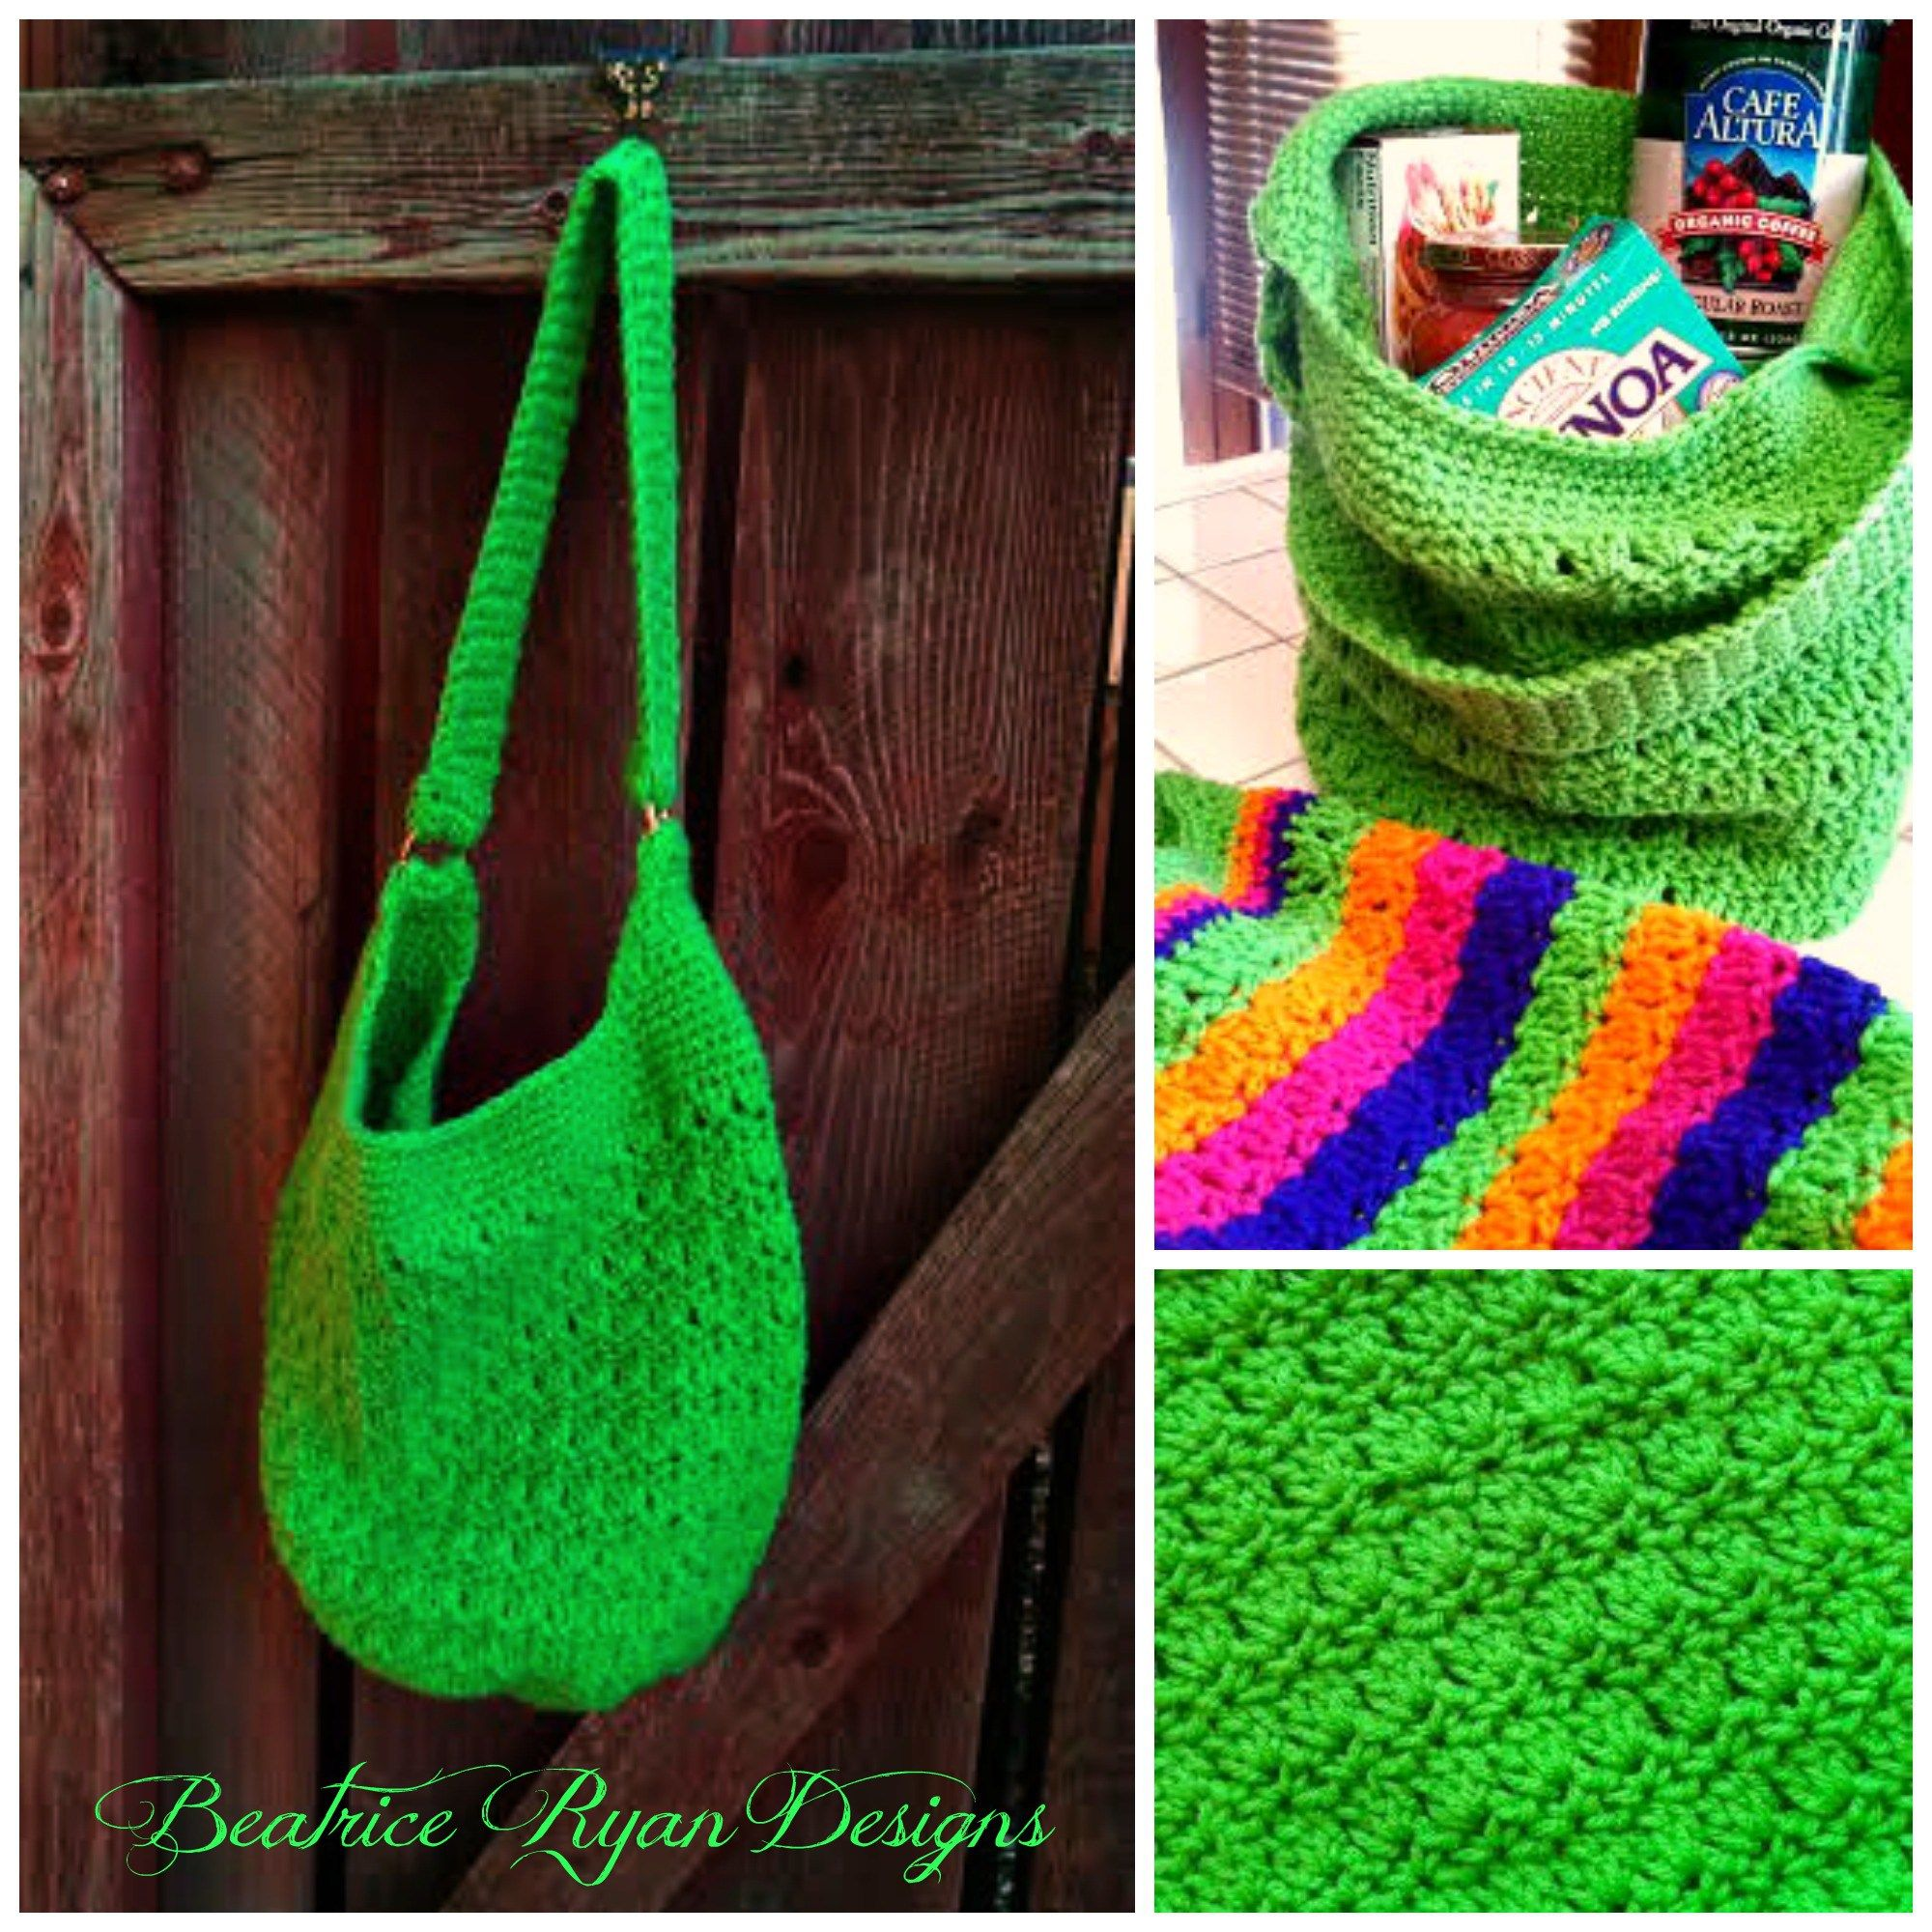 Amazing grace tote free pattern crochet purses and baskets amazing grace tote free crochet pattern from beatrice ryan designs bankloansurffo Image collections